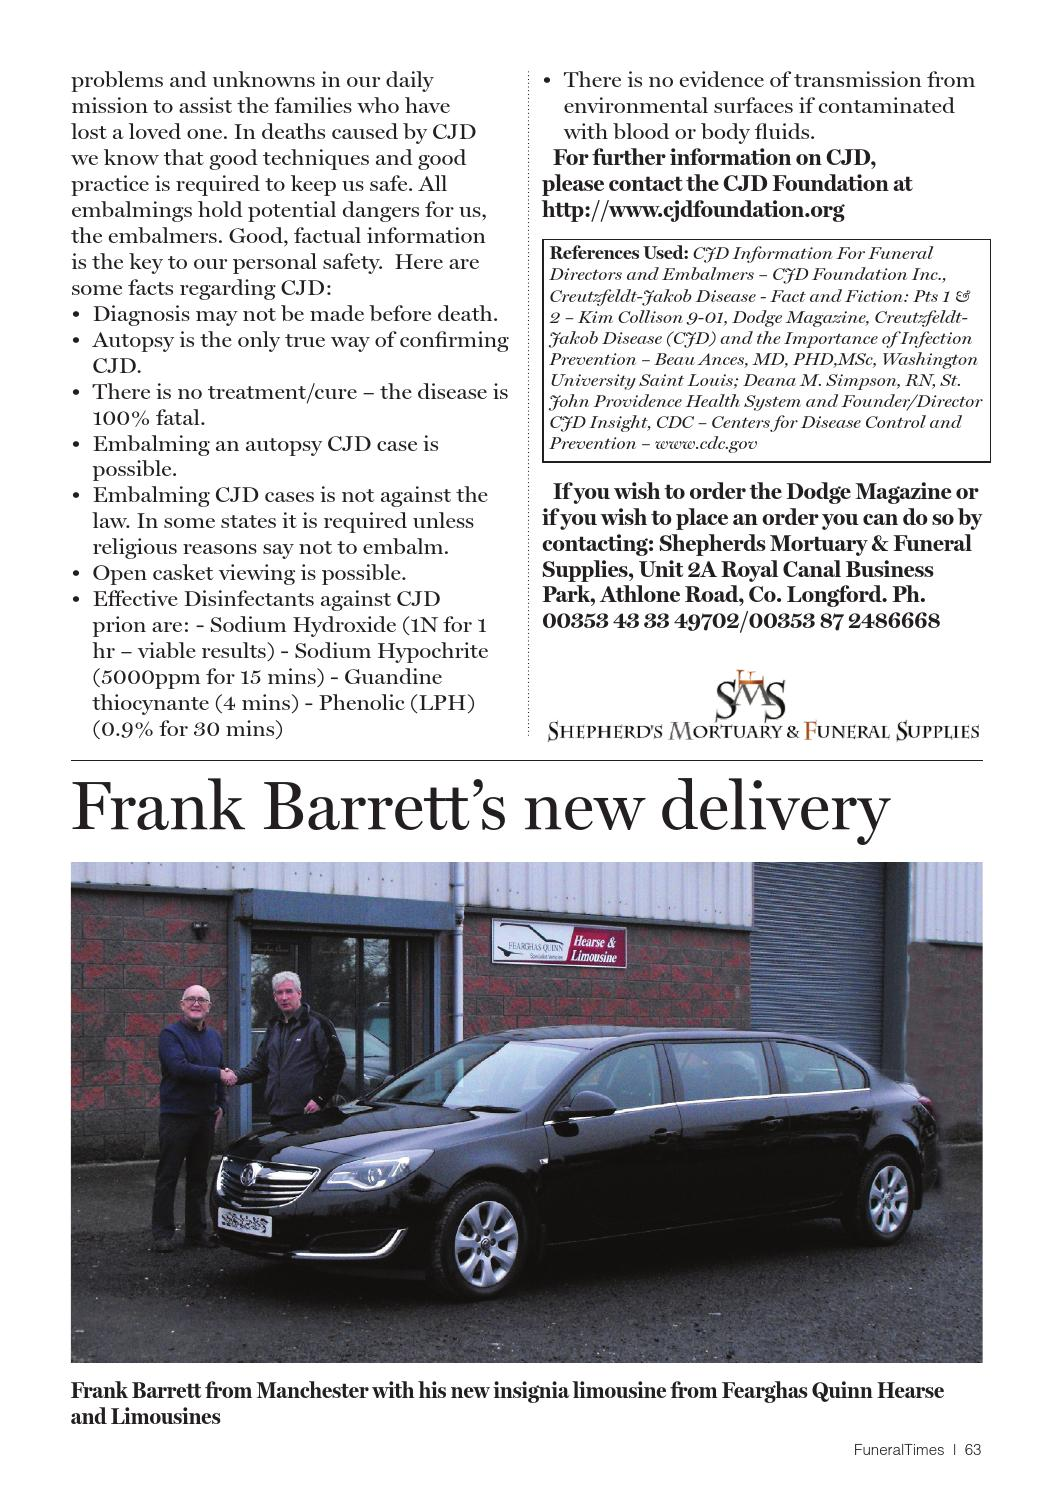 Funeral times issue 1 2016 new by Inhouse - issuu